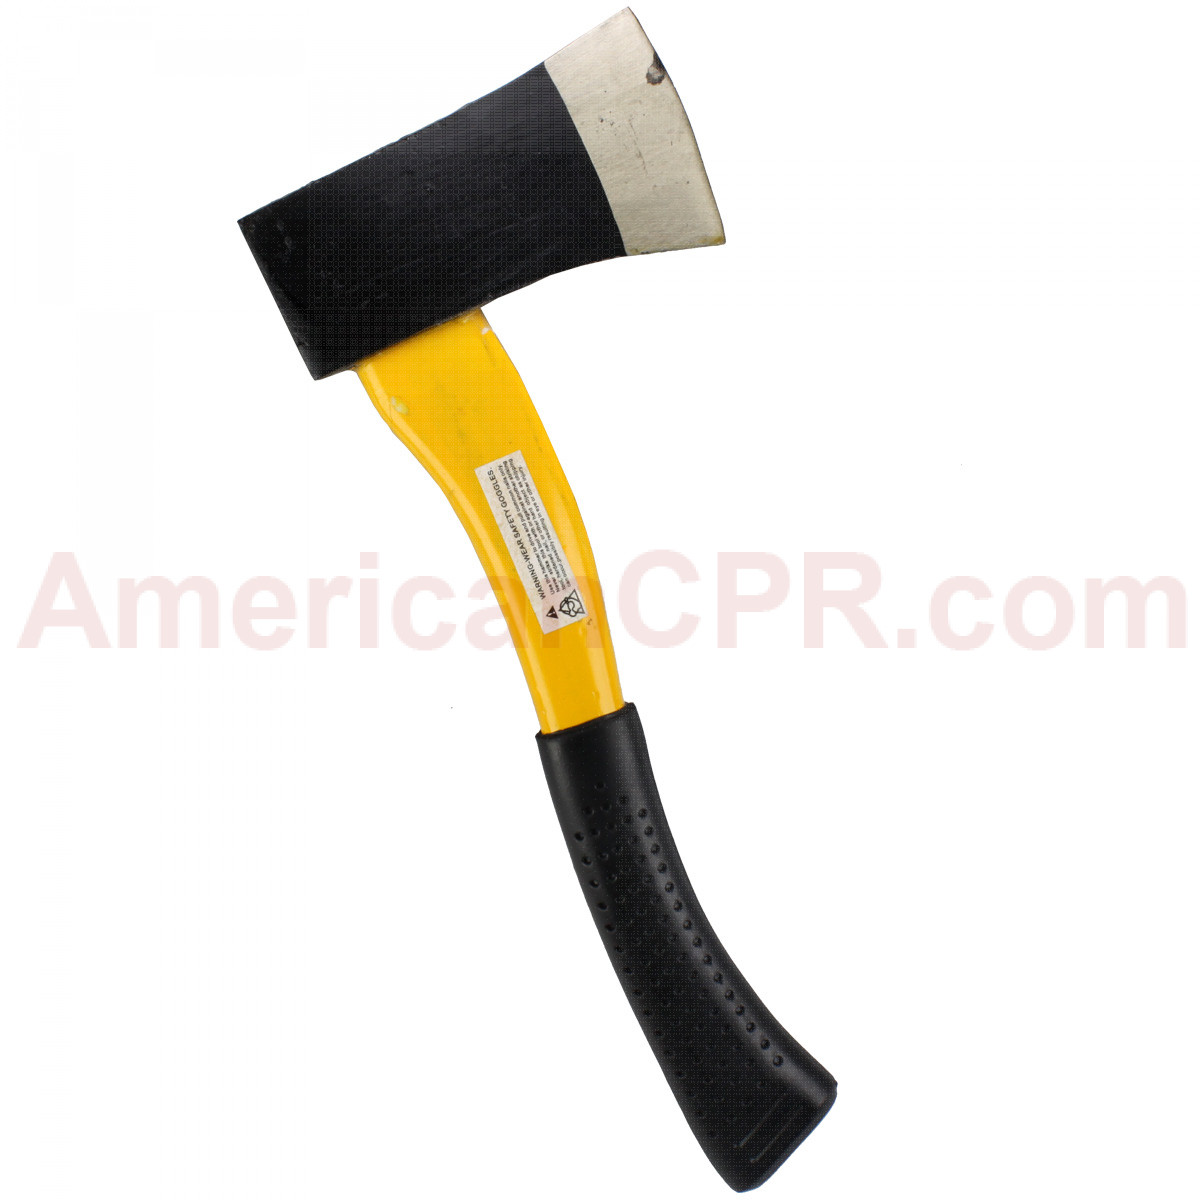 Camp Axe Rubber Handle - Value Brand